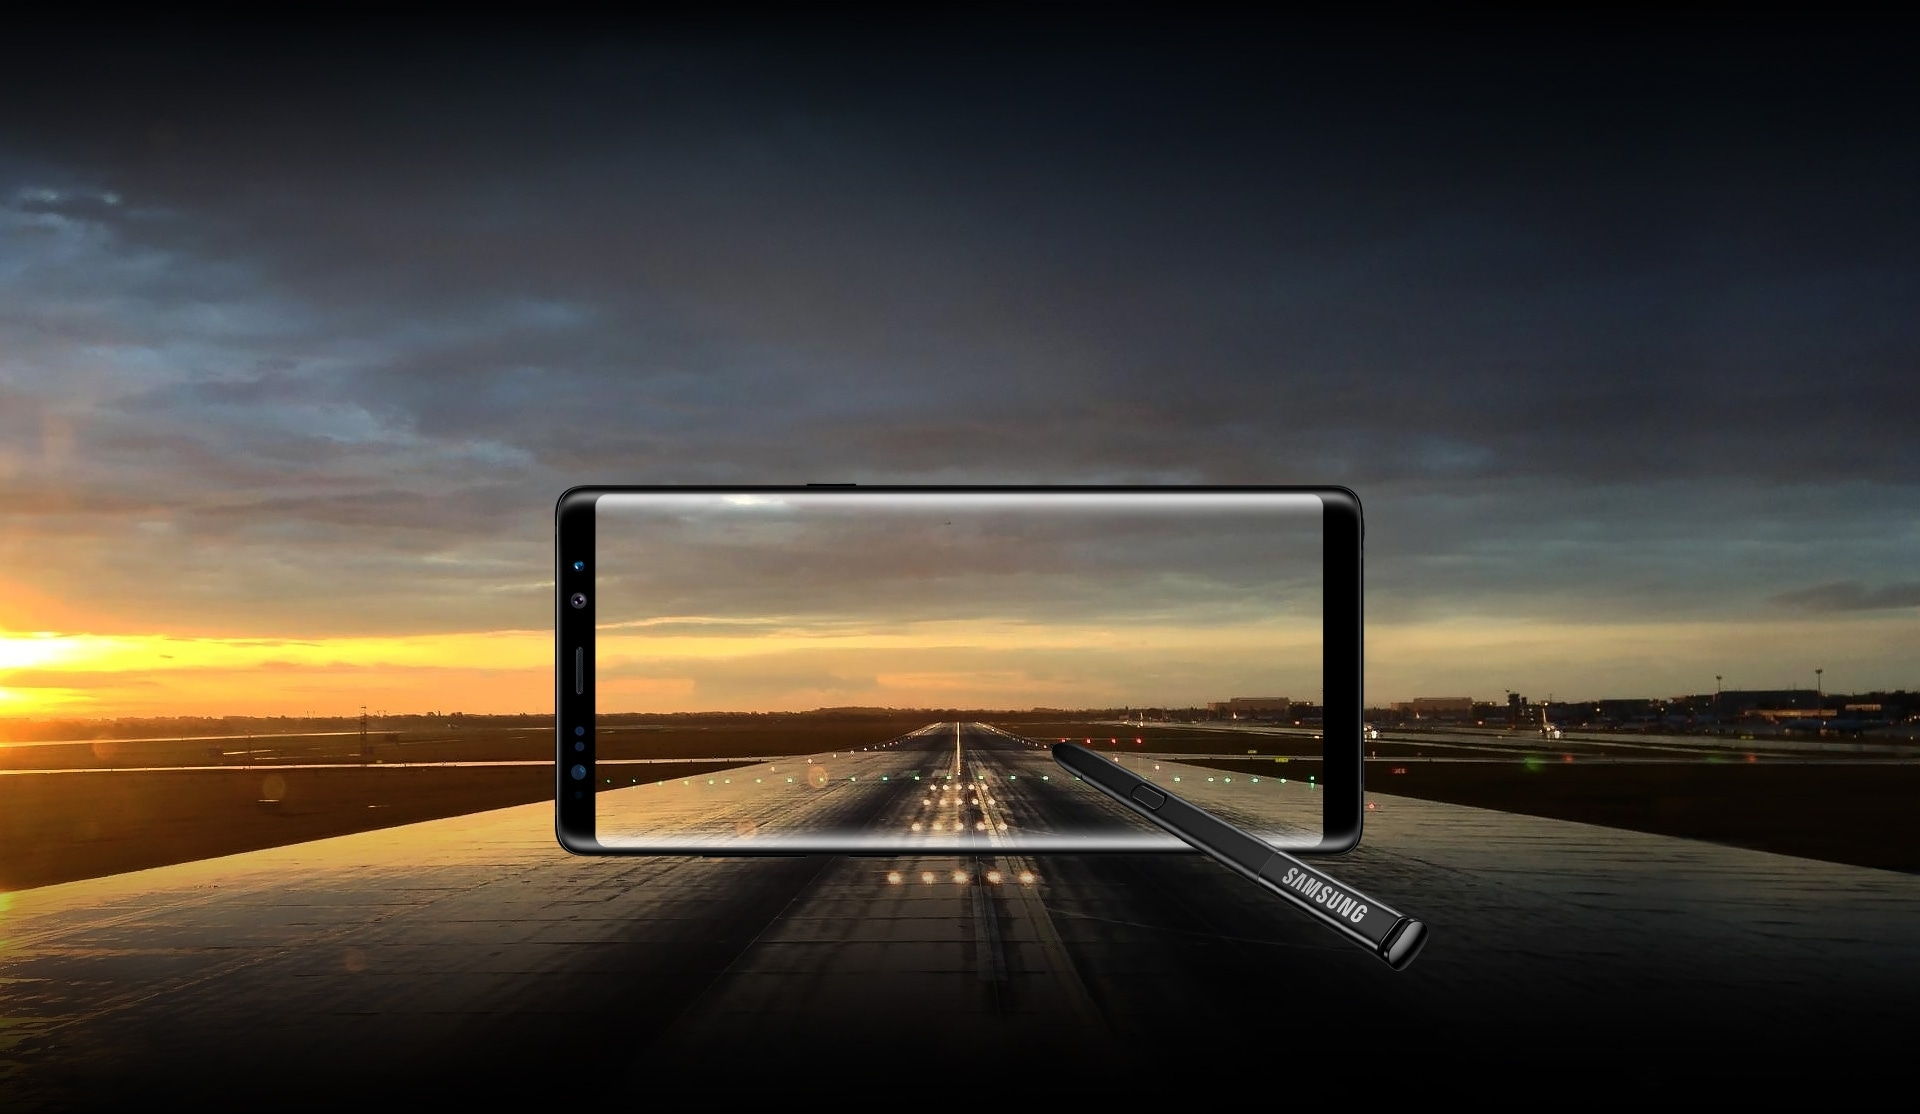 Image of translucent Galaxy Note8 and the S Pen over an airport runway